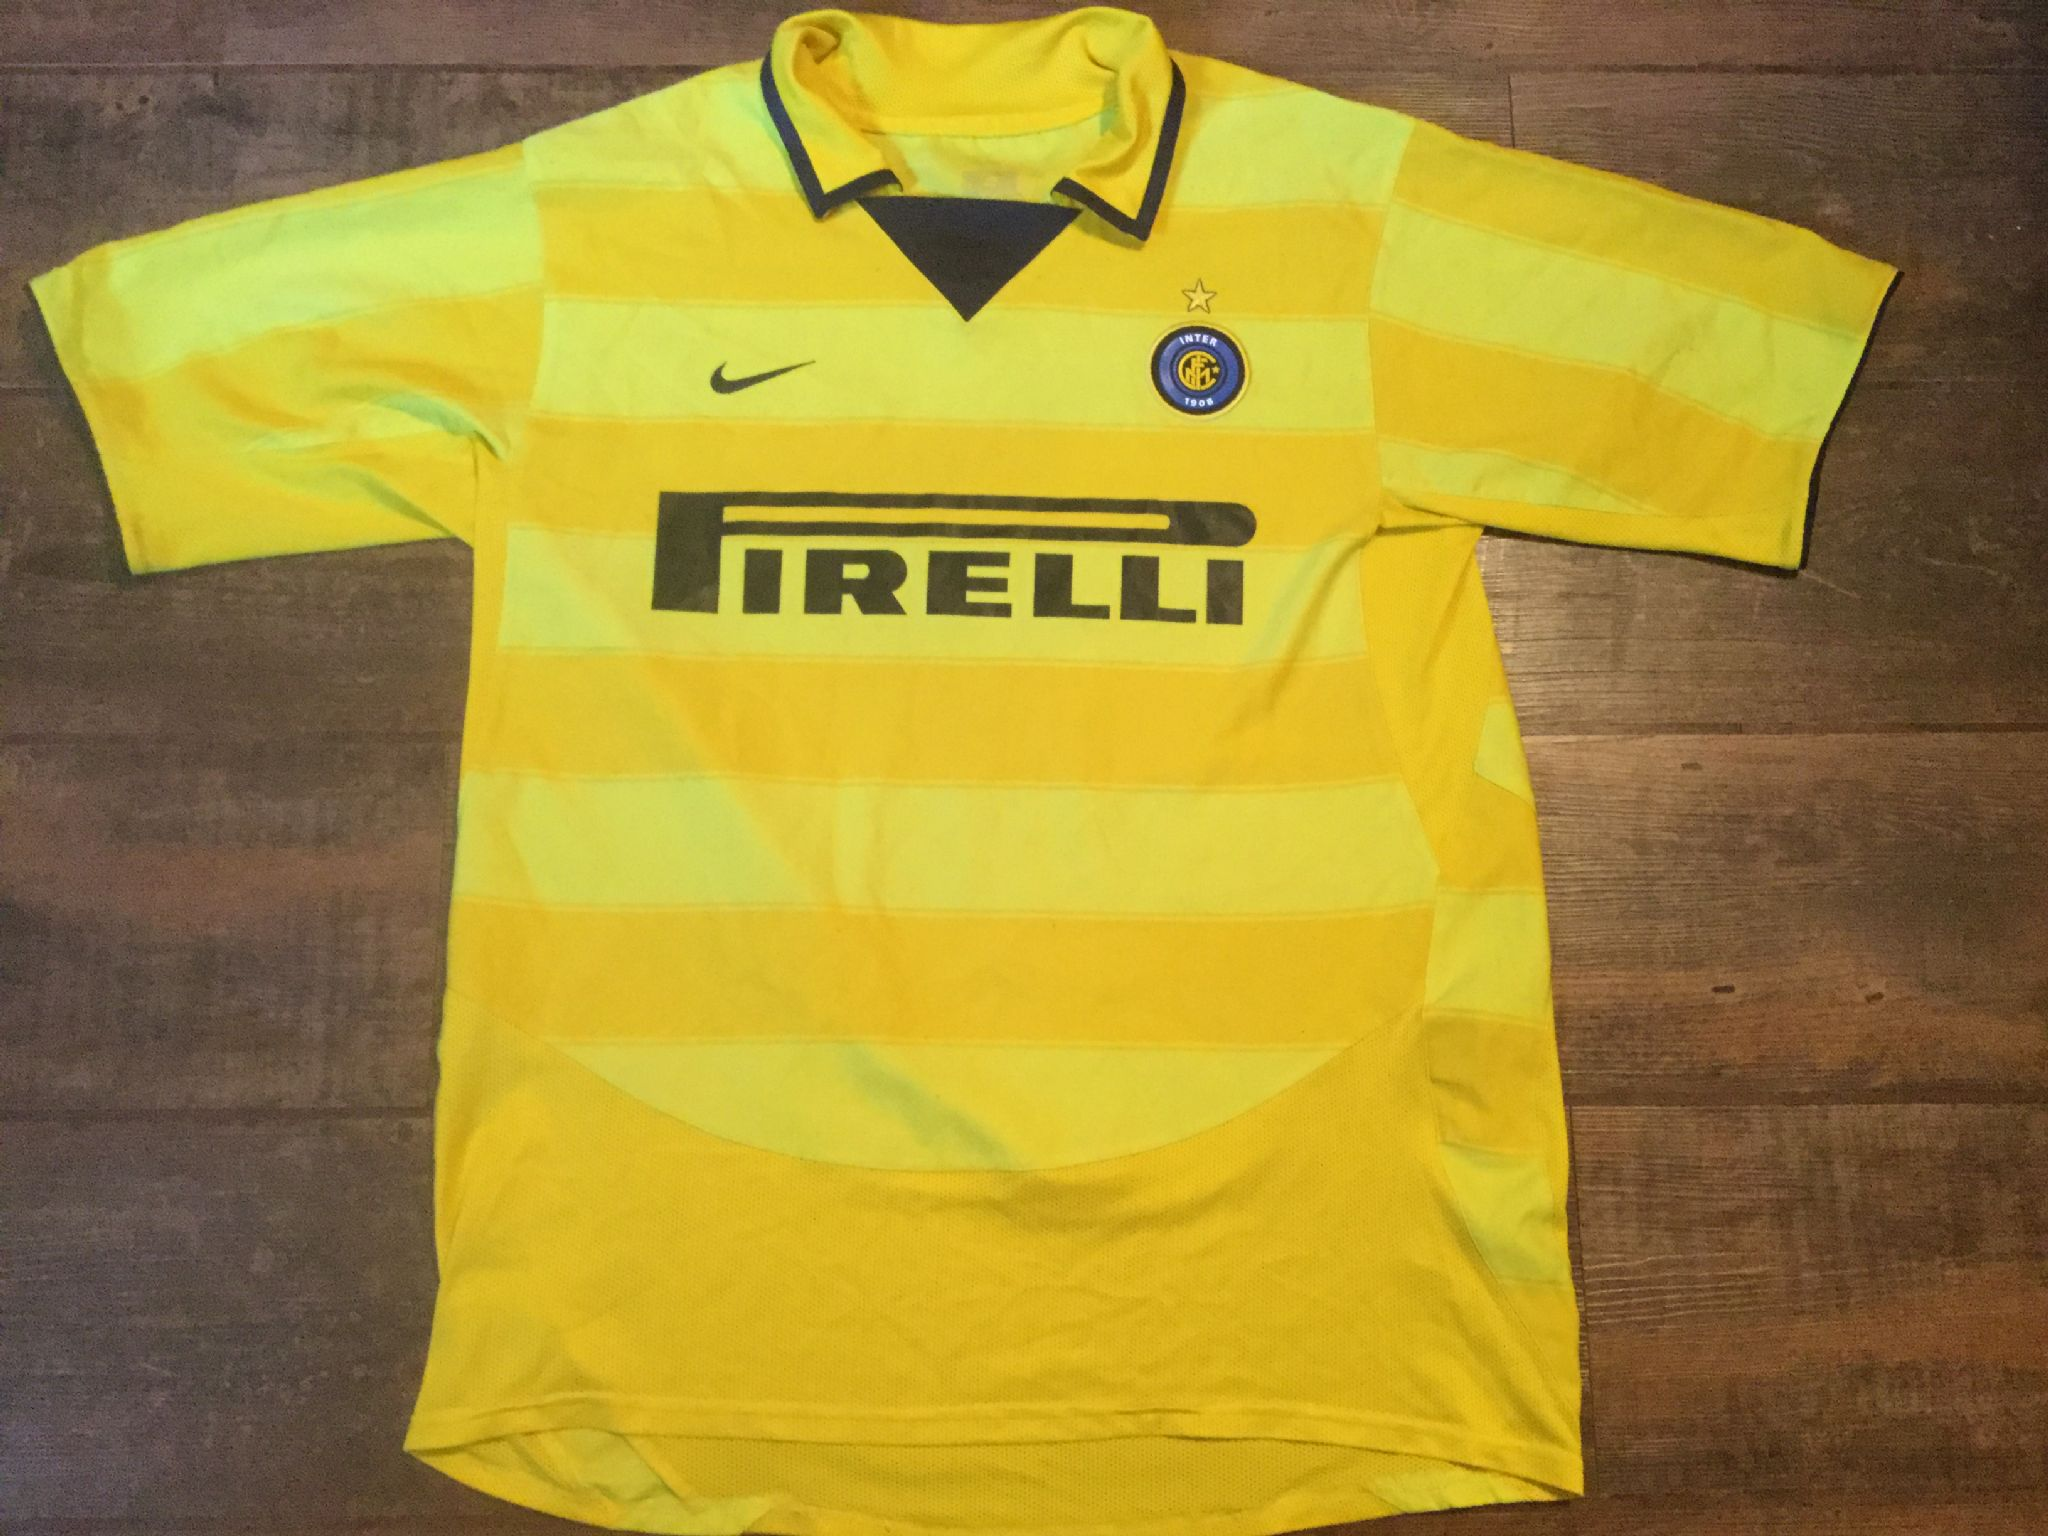 wholesale dealer 7aefb 99423 Global Classic Football Shirts | 2003 Inter Milan Vintage ...